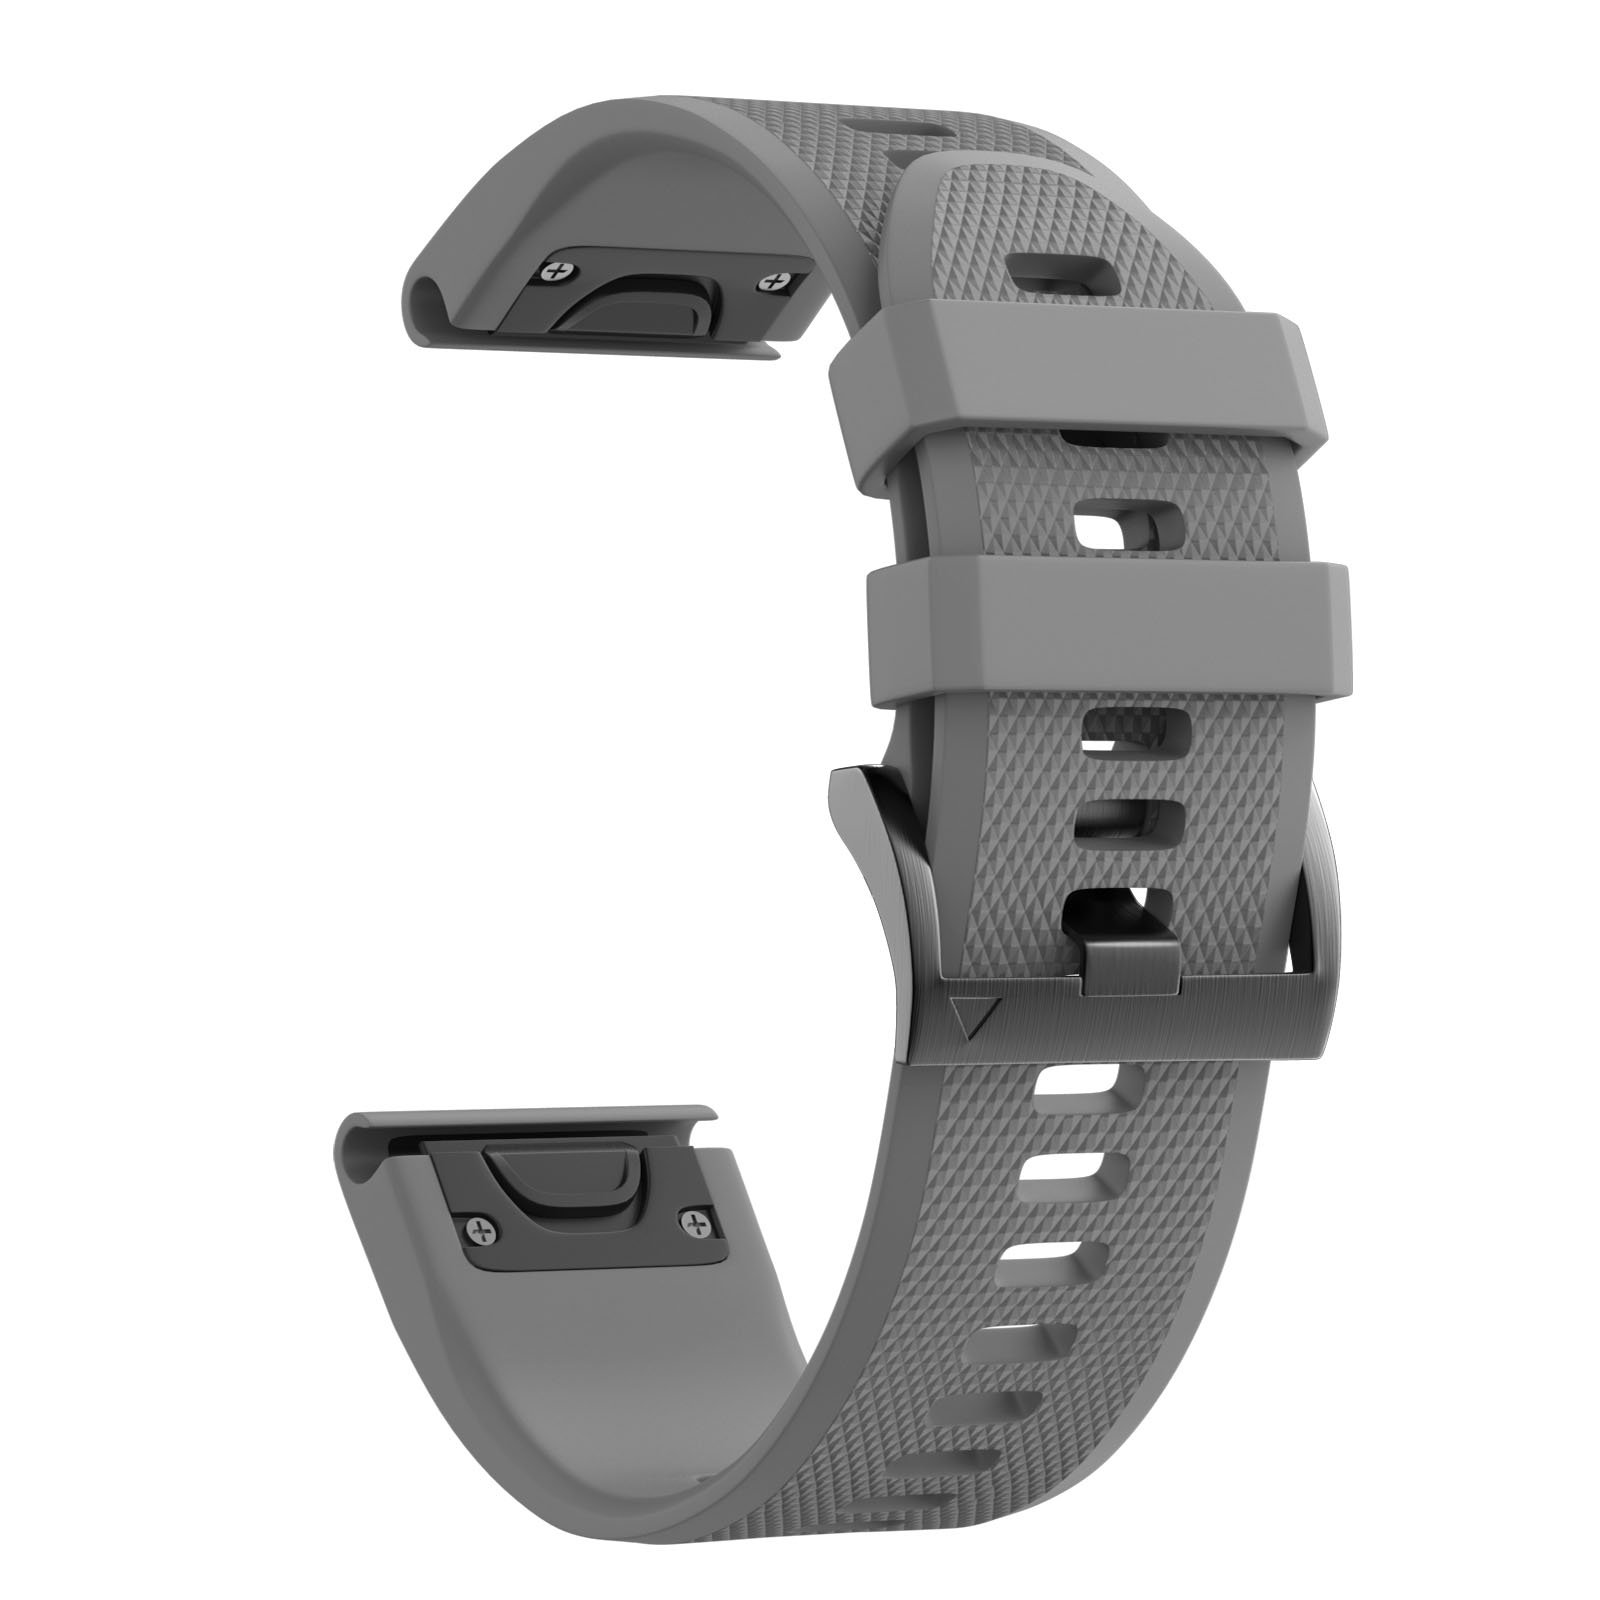 ANCOOL Compatible with Fenix 5 Band Easy Fit 22mm Width Soft Silicone Watch Strap Replacement for Fenix 5/Fenix 5 Plus/Forerunner 935/Approach S60/Quatix 5 - Grey by ANCOOL